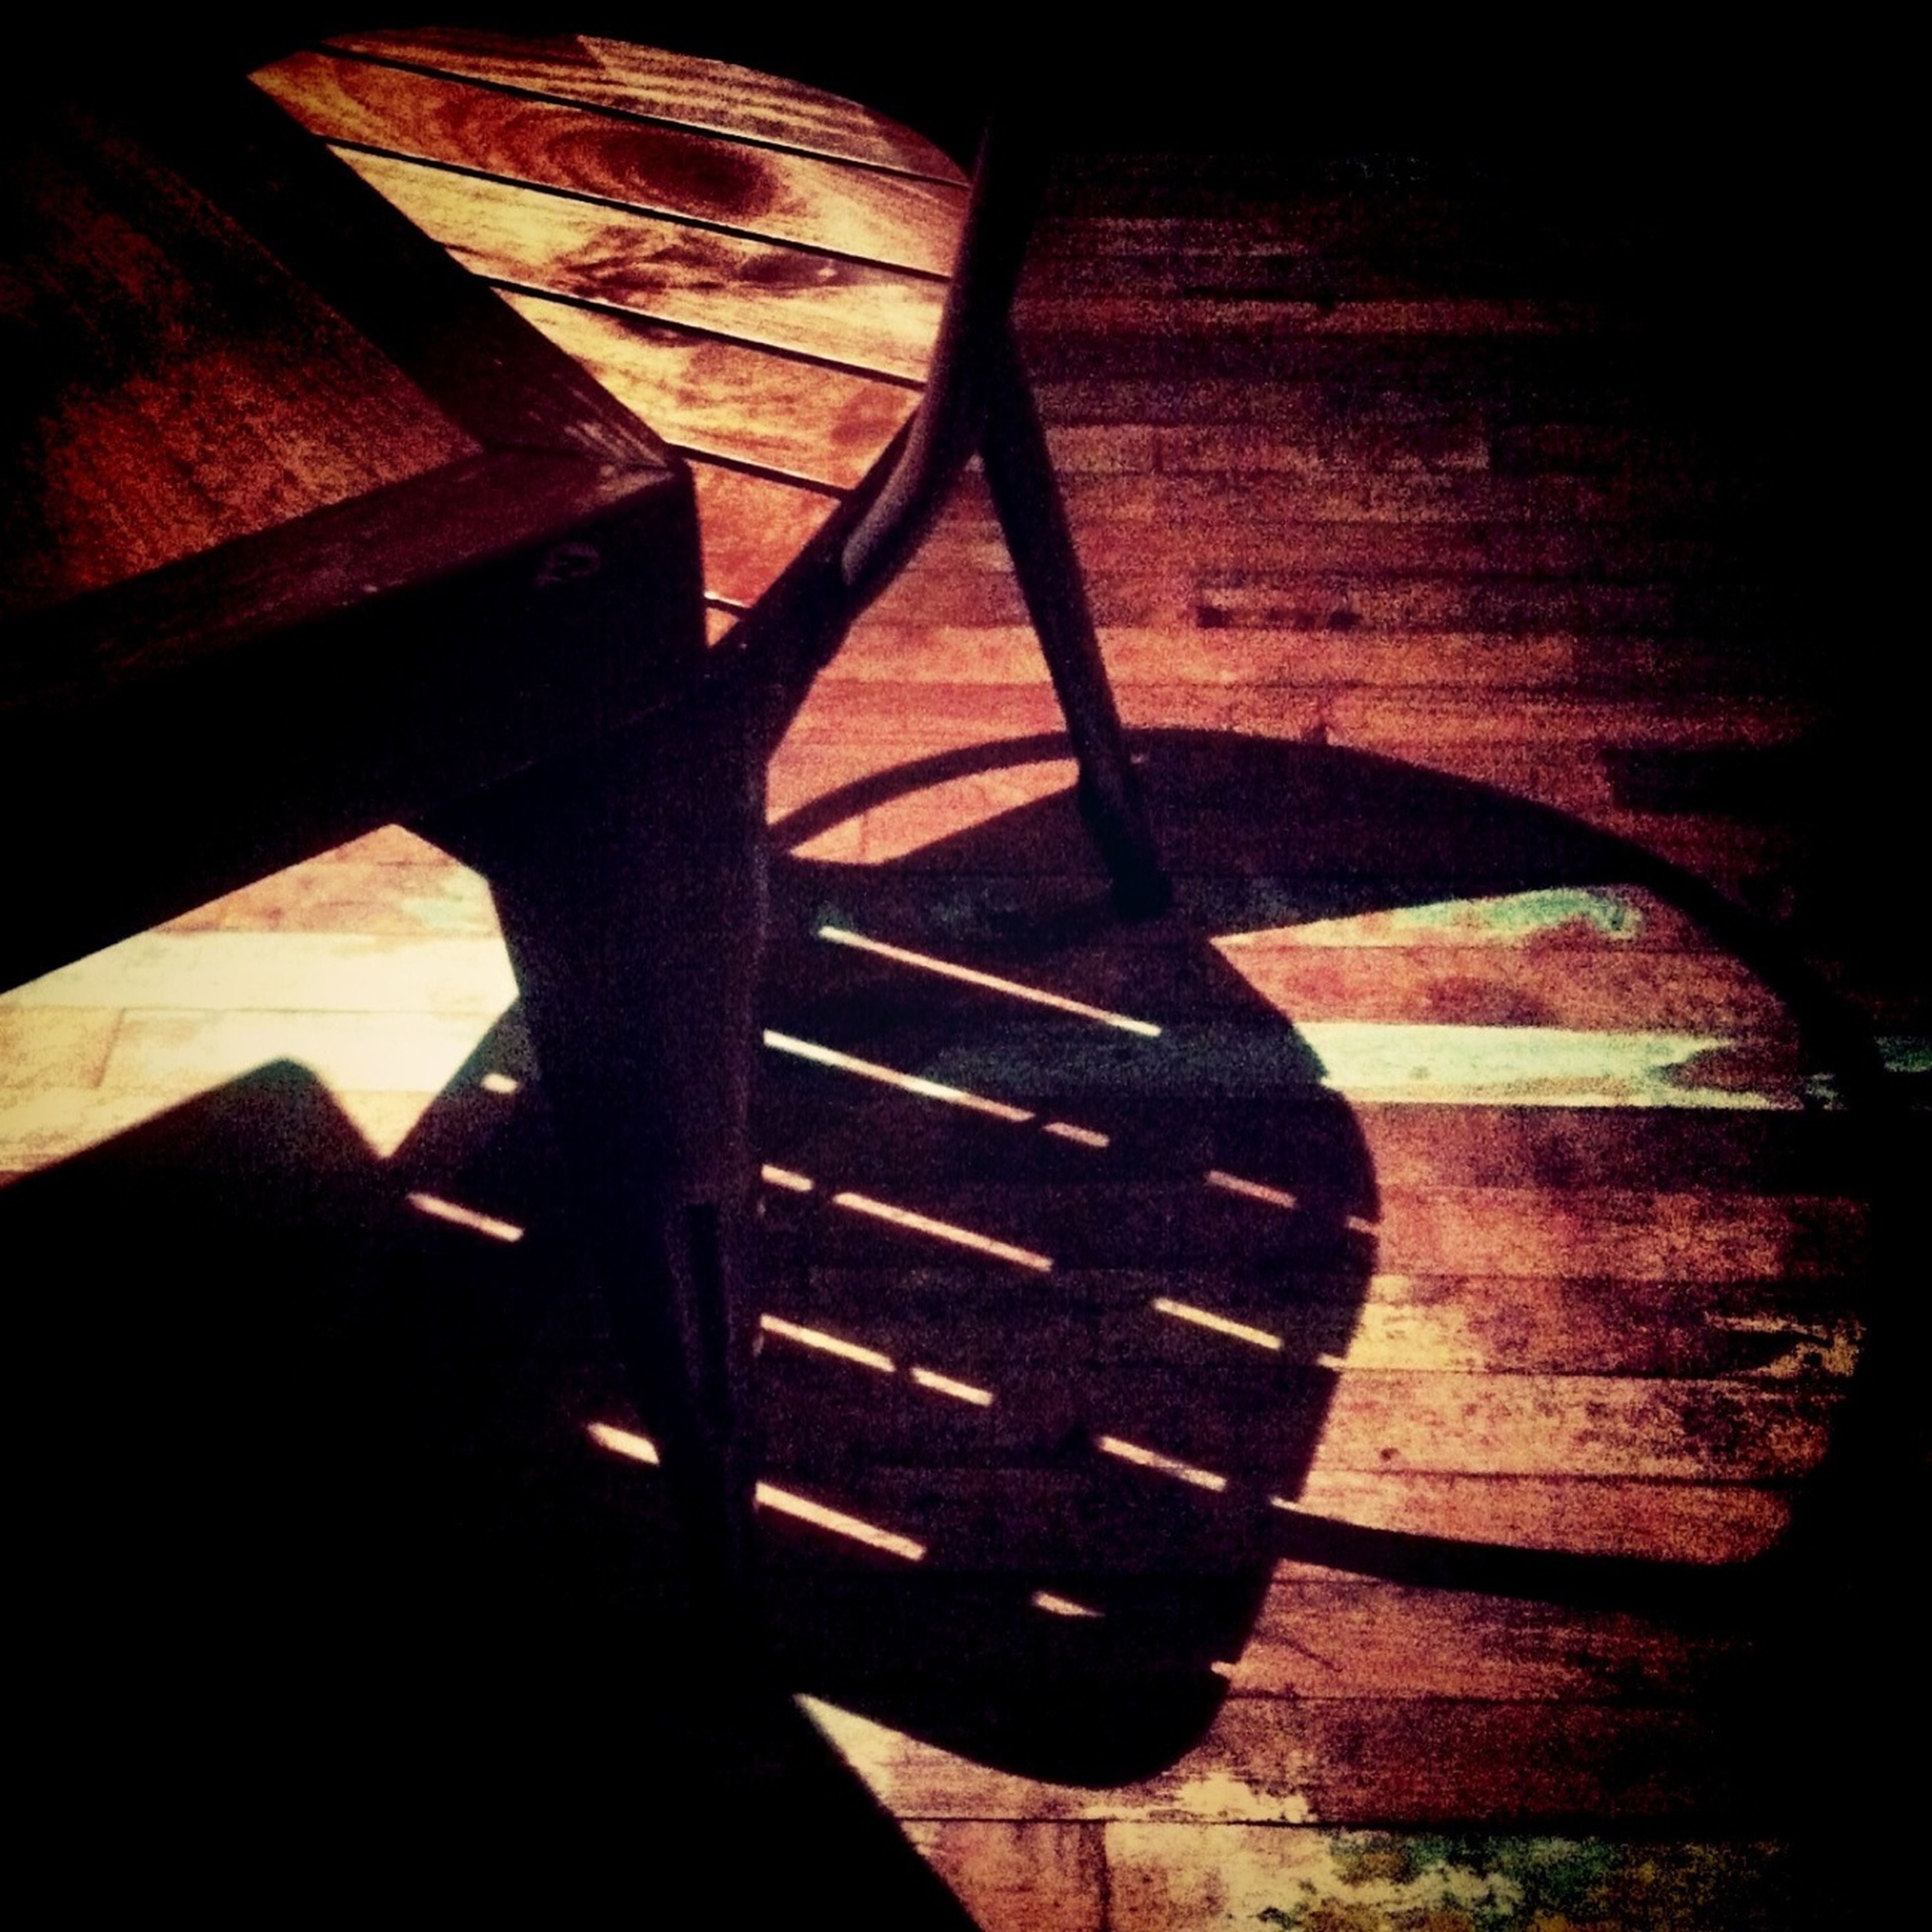 shadow, high angle view, indoors, steps, wood - material, sunlight, staircase, steps and staircases, chair, absence, close-up, empty, table, no people, bench, wooden, wood, pattern, dark, wall - building feature